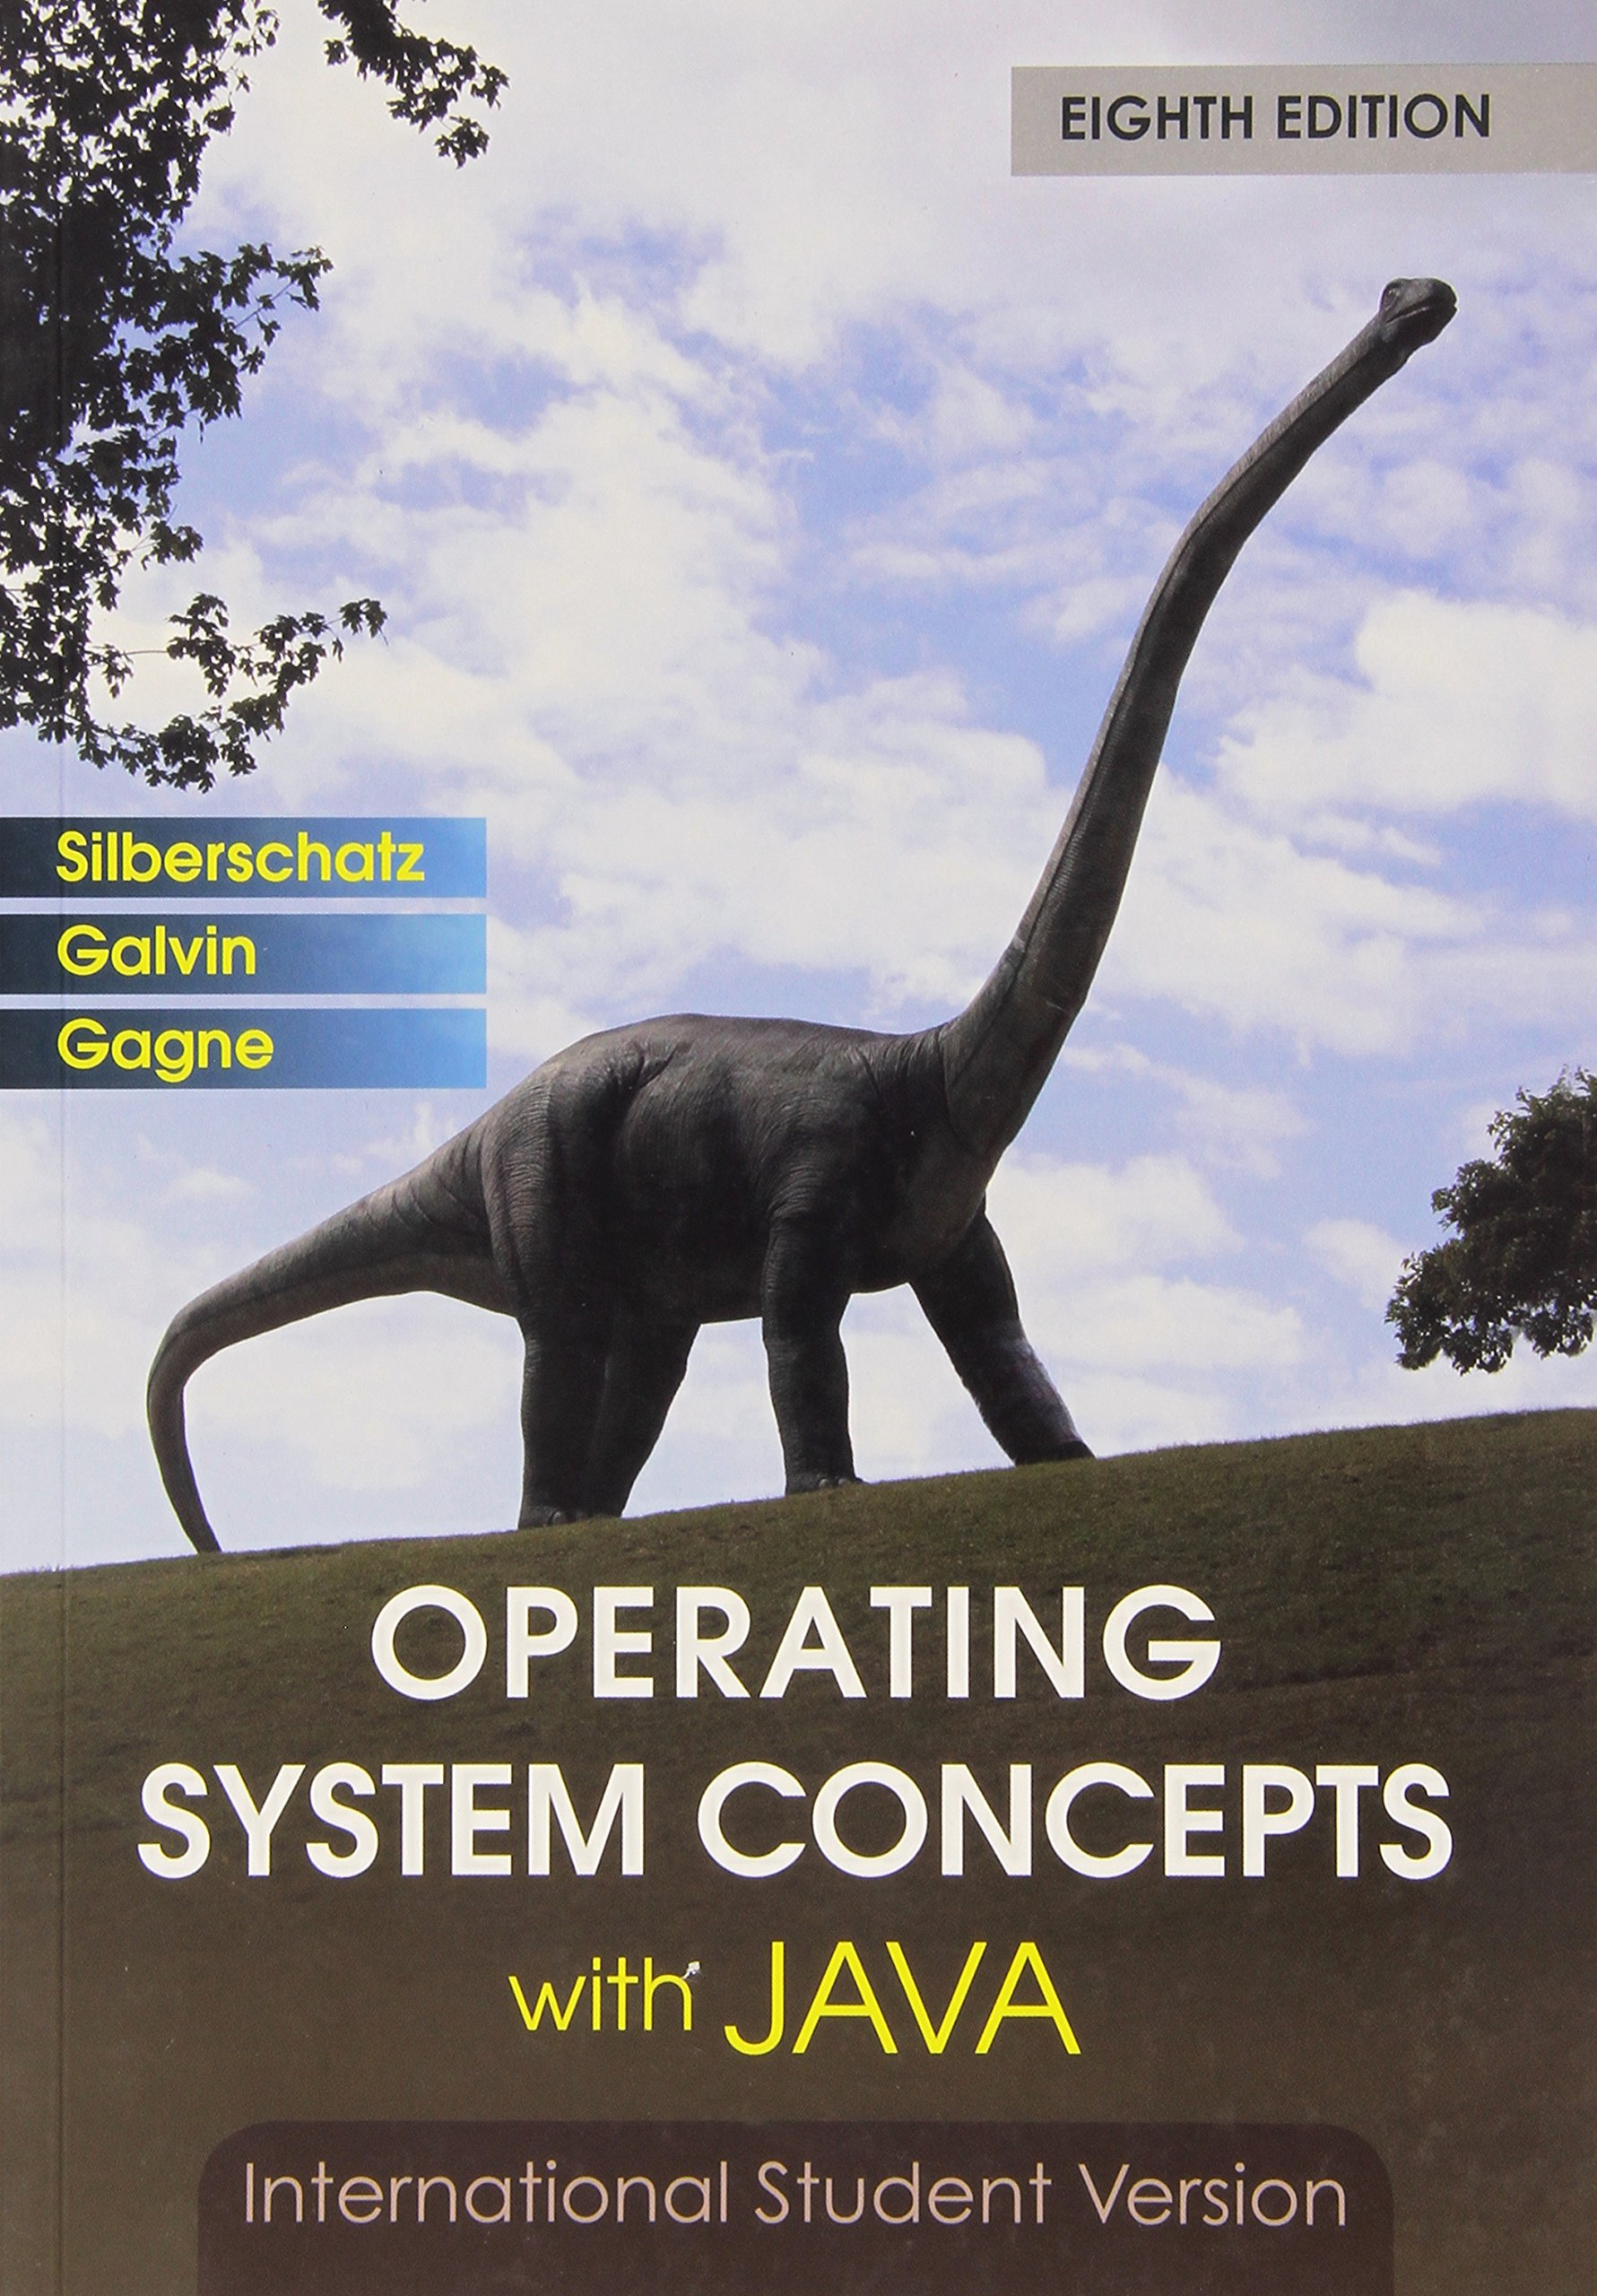 OPERATING SYSTEM CONCEPTS EBOOK DOWNLOAD